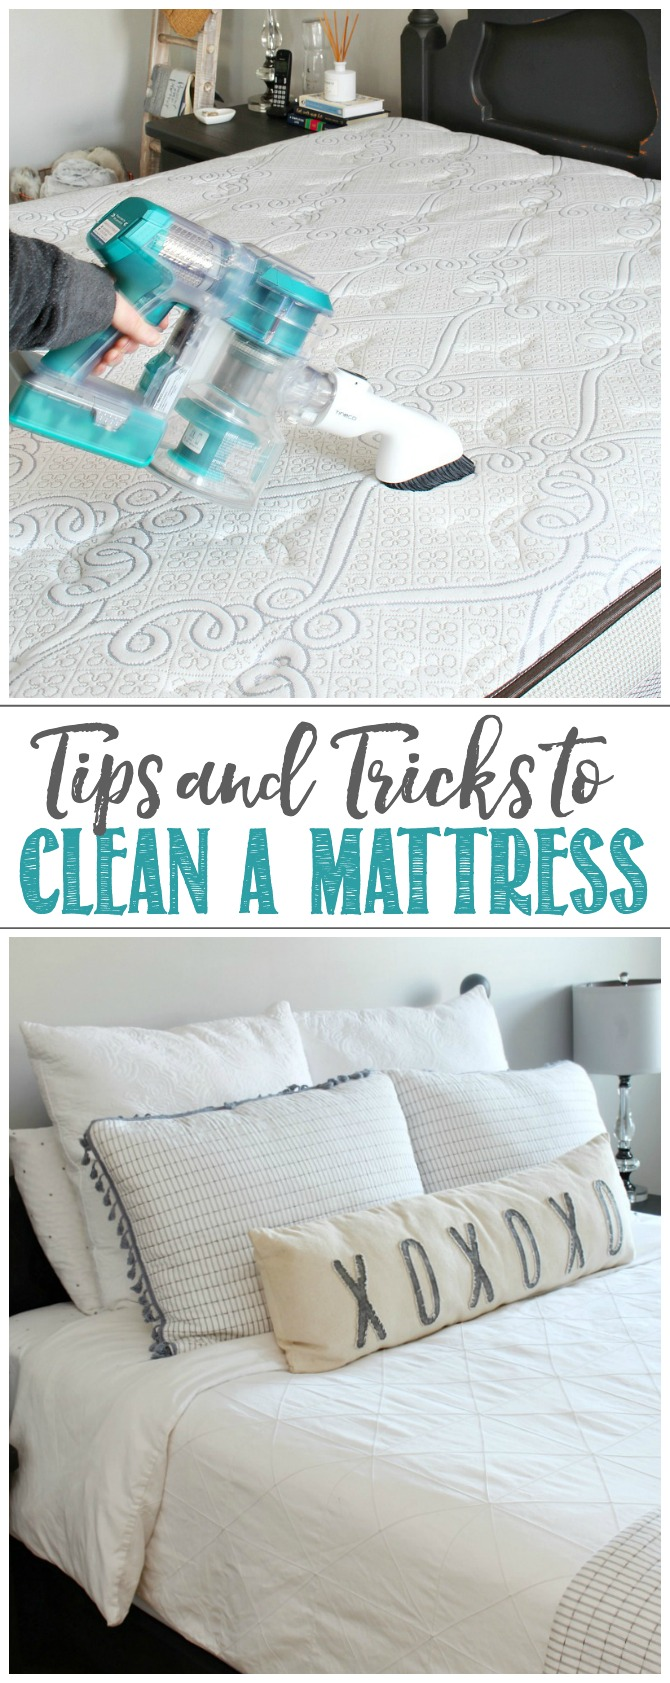 Tips and tricks to clean a mattress.